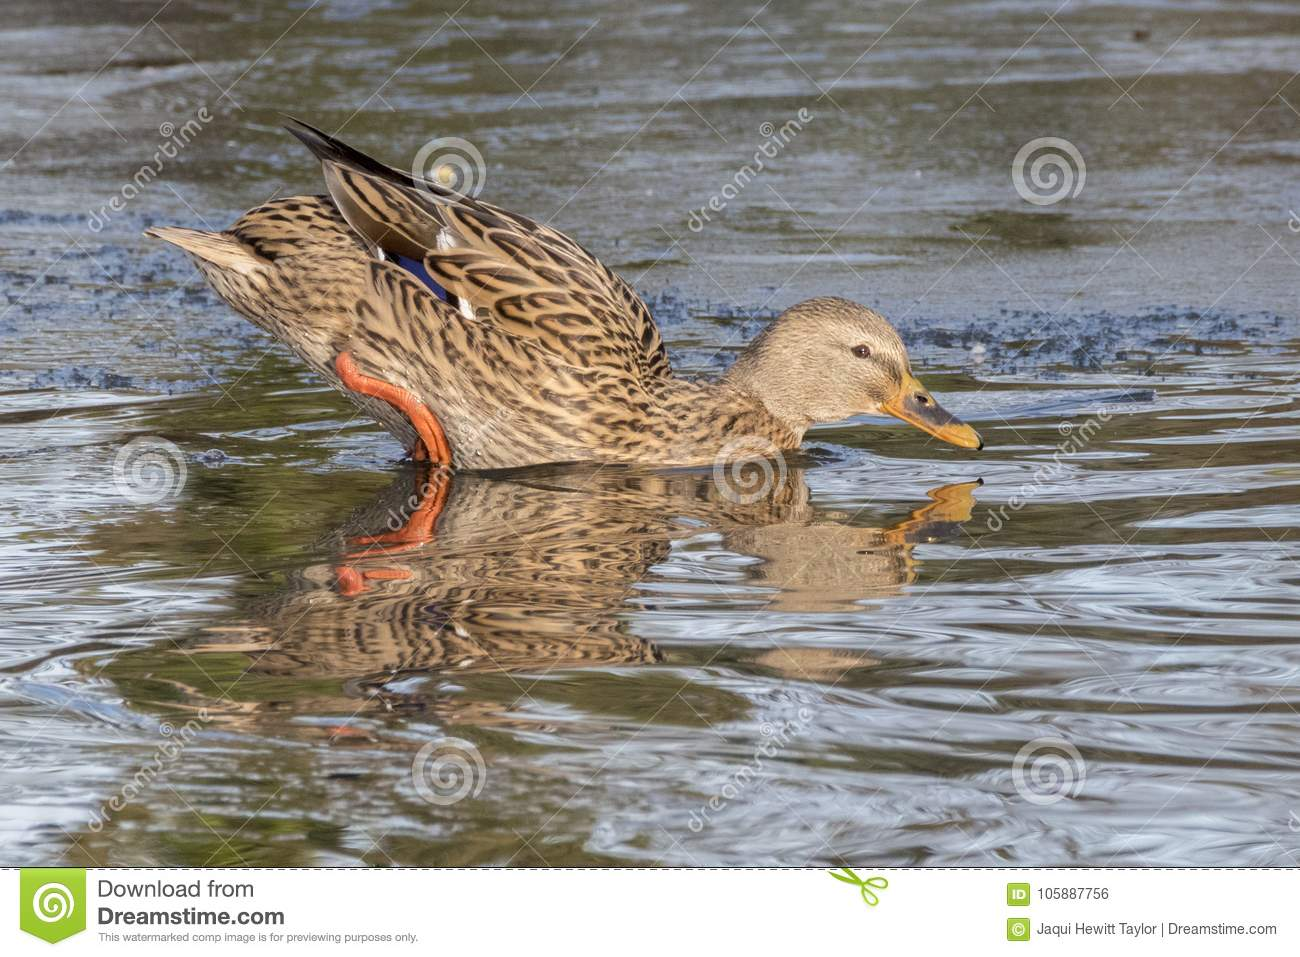 Download A Mallard Duck Entering The Icy Water Stock Photo - Image of female, reflected: 105887756